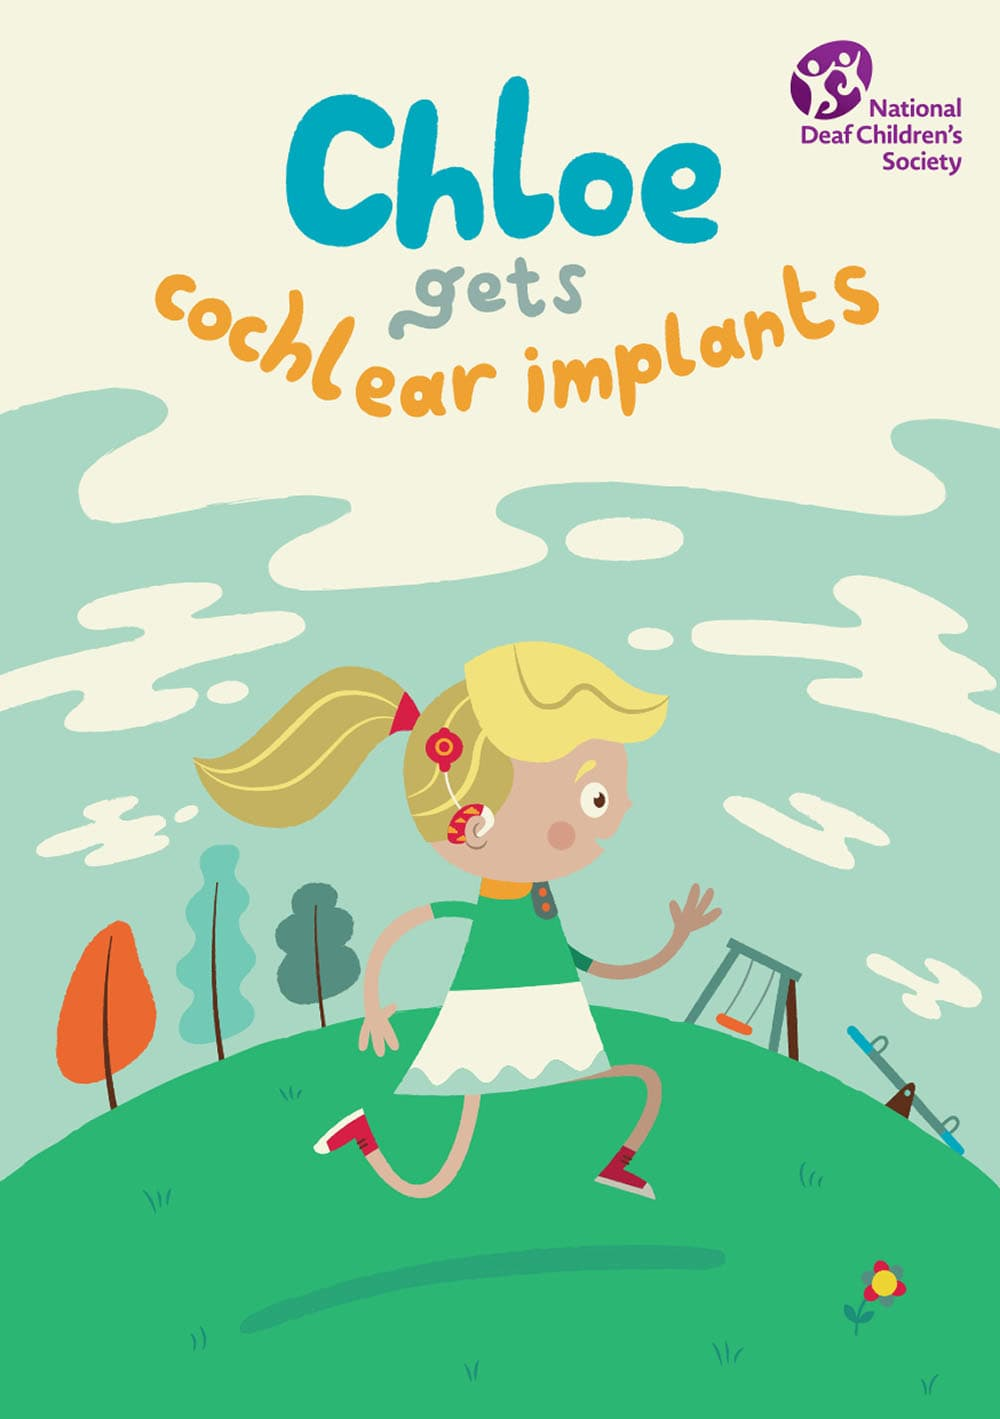 Chloe Gets Cochlear Implants